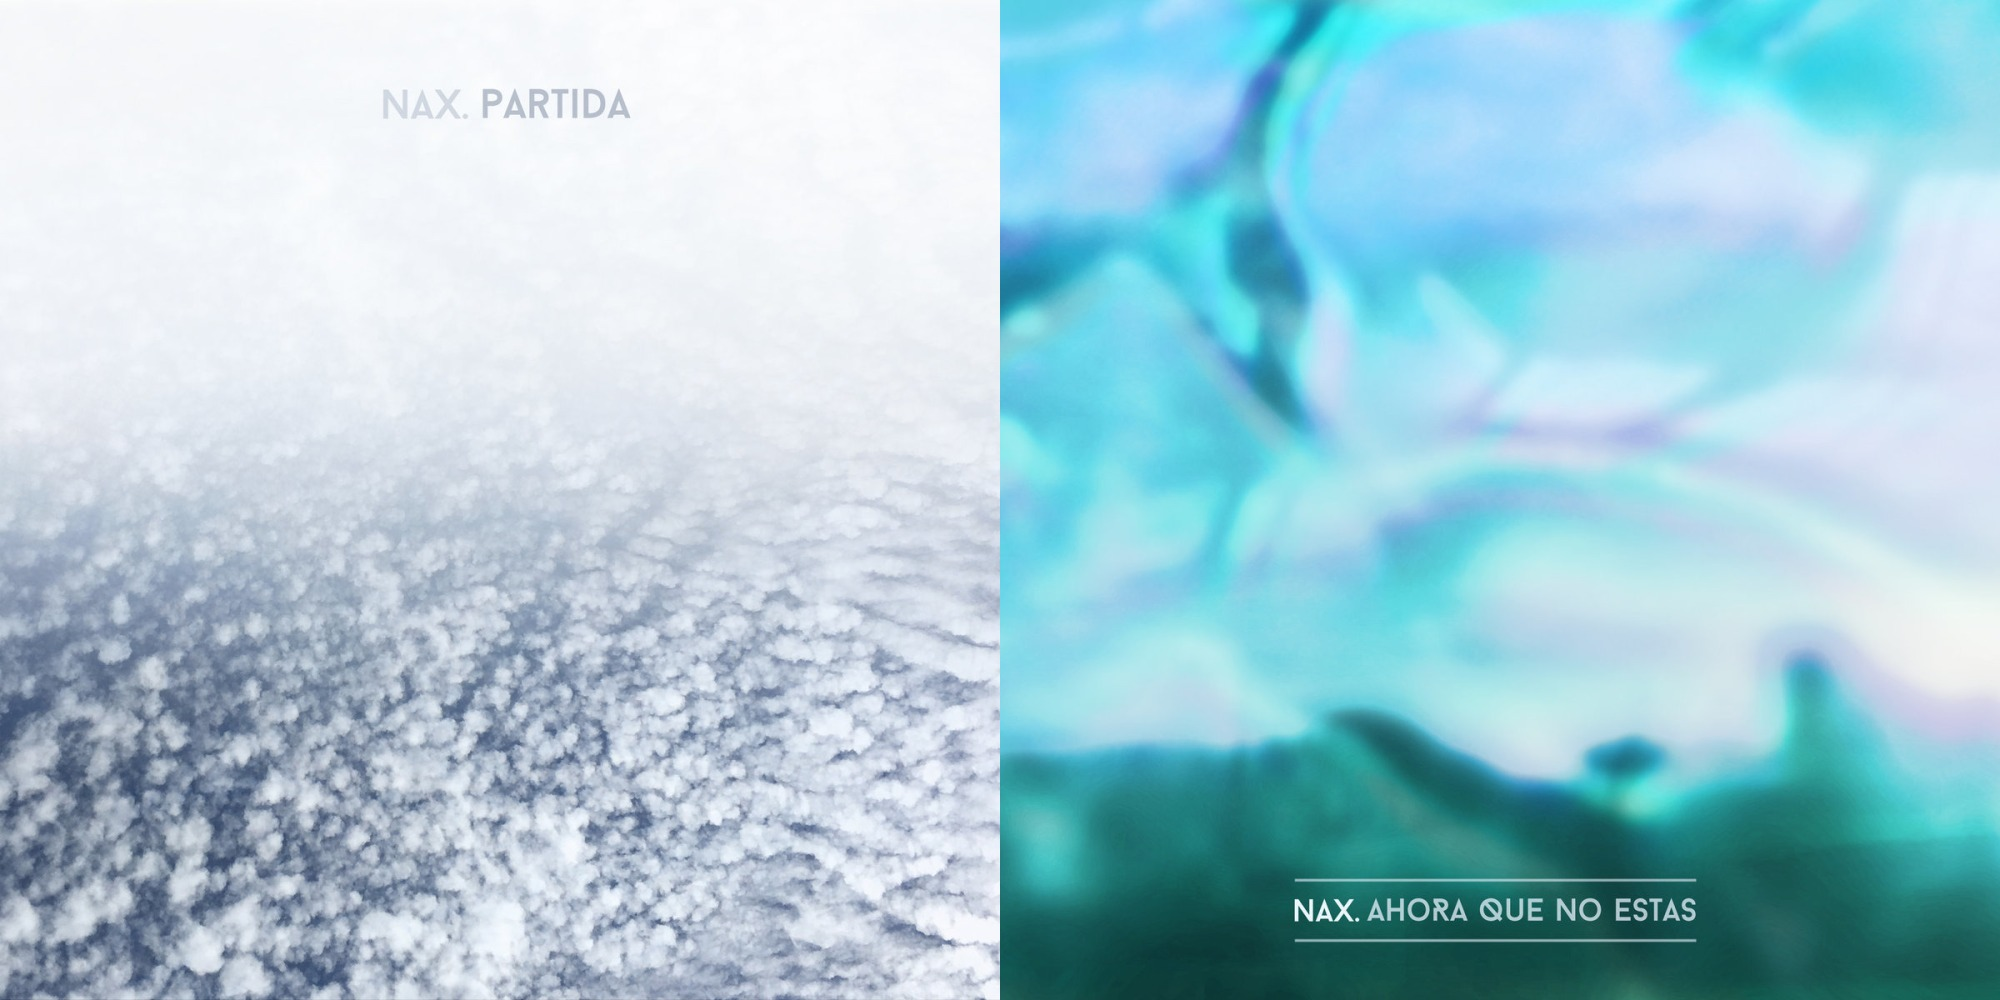 Nax singles 'Partida' and 'Ahora que no estas' Artwork